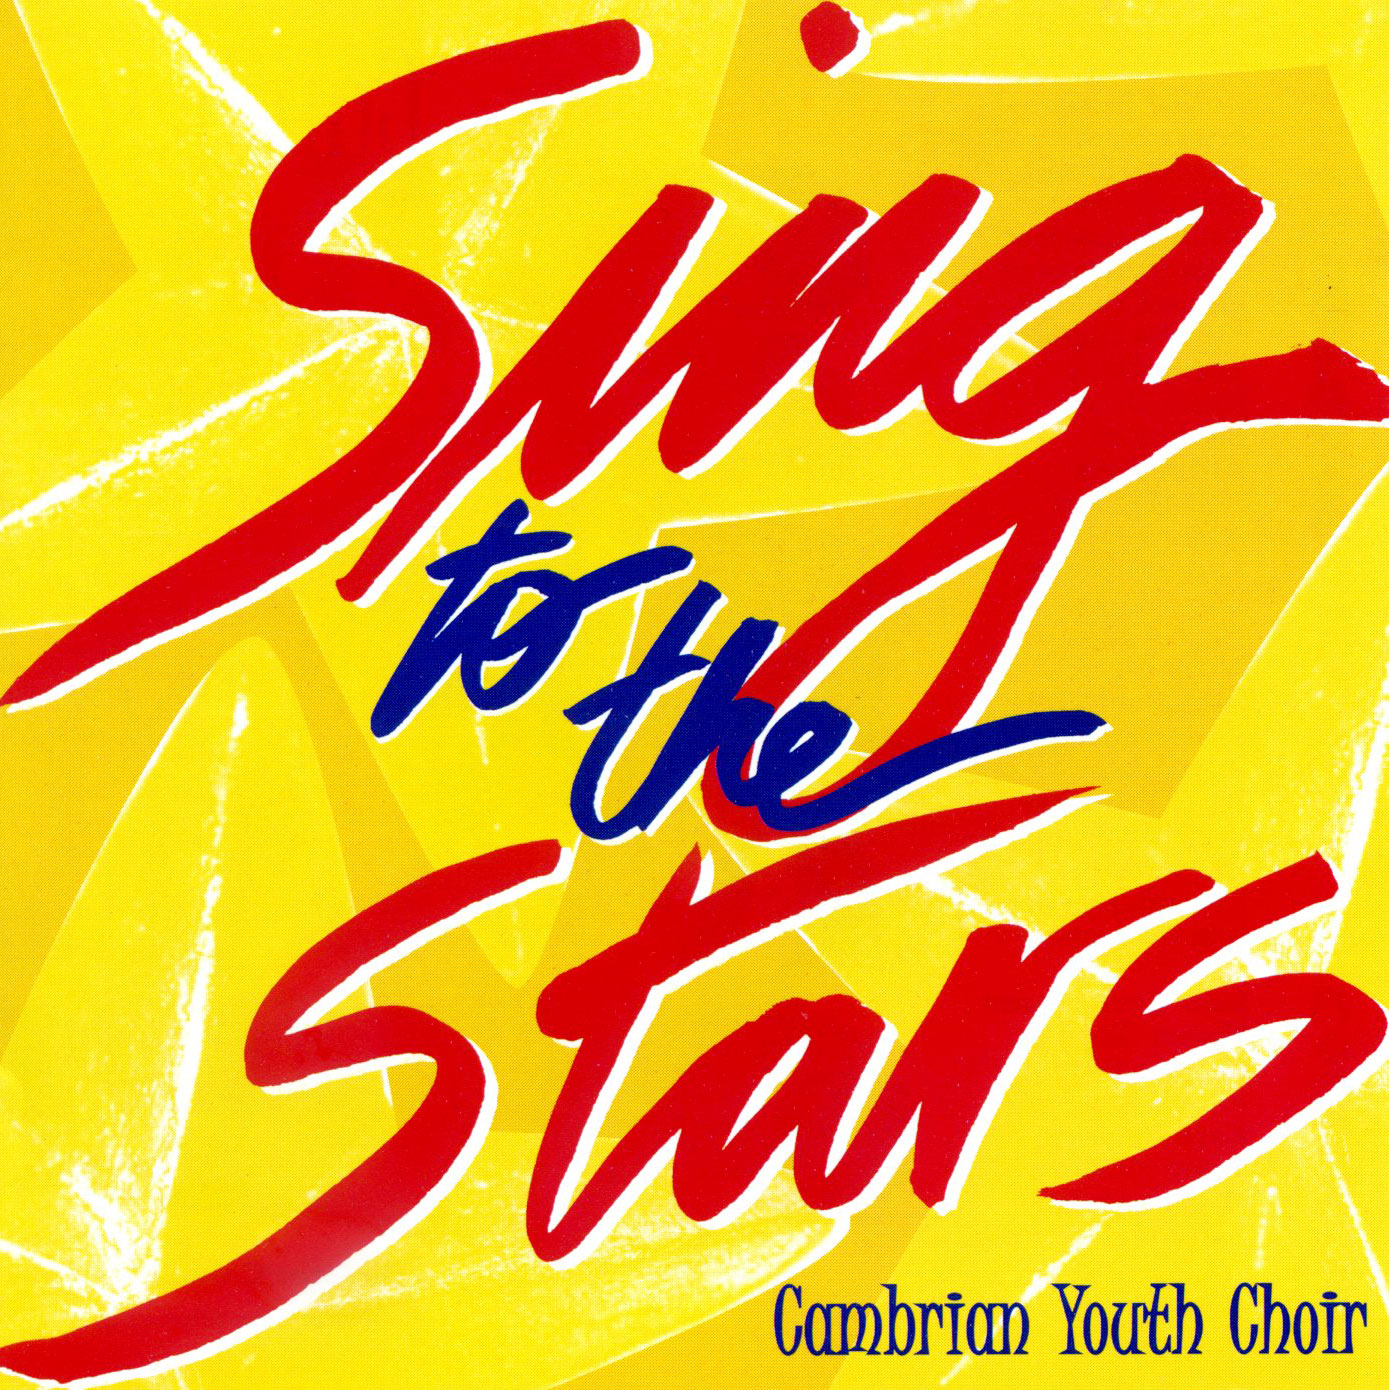 CD Recordings - Sing to the Stars